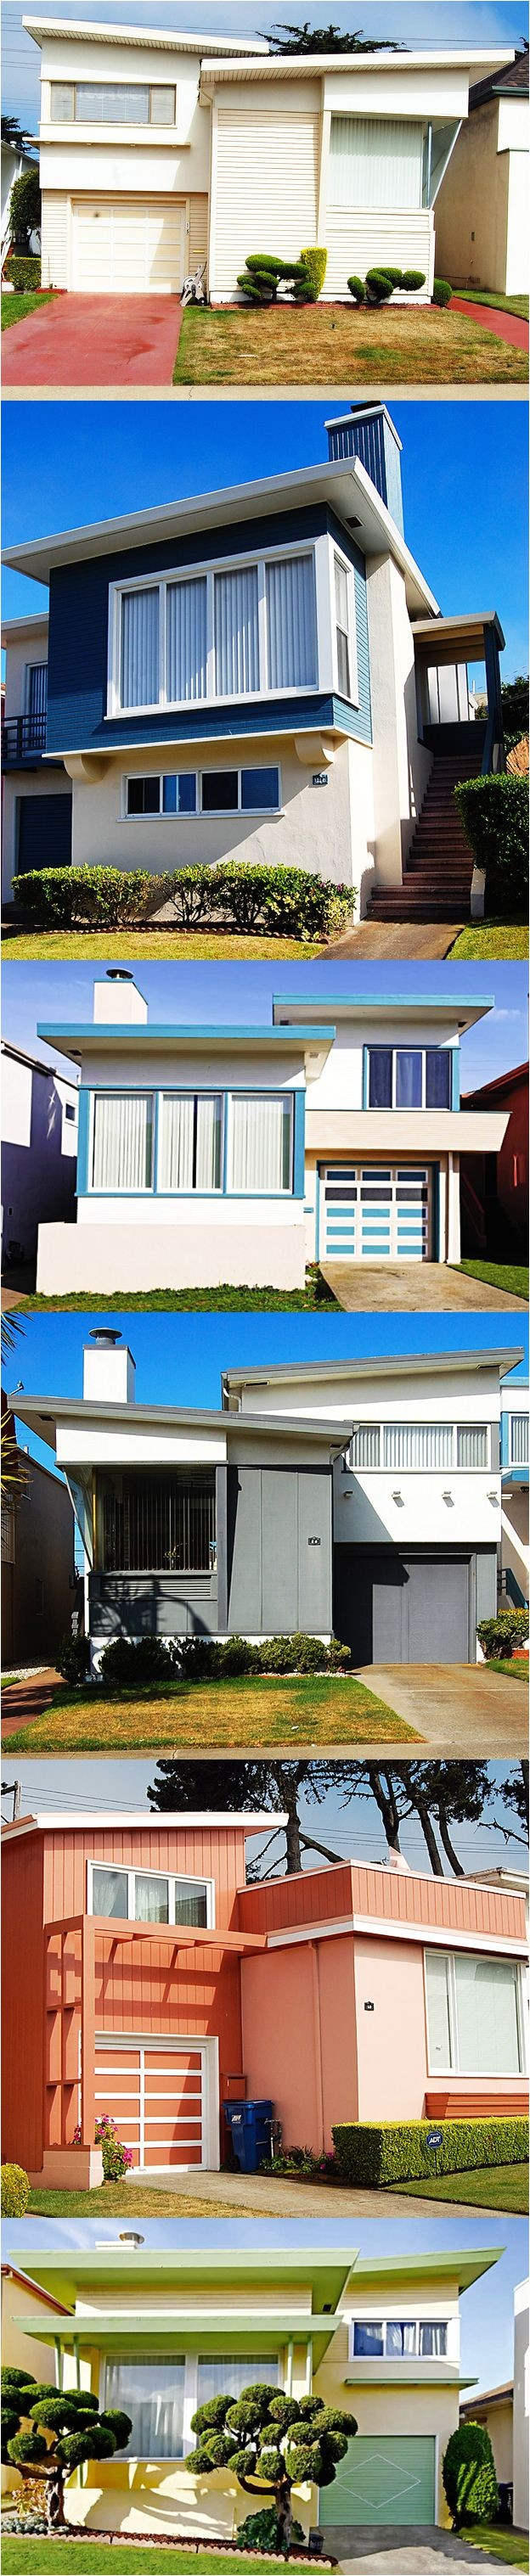 henry doelger homes dale city s westlake district california love the last house especially the diamond on the garage door